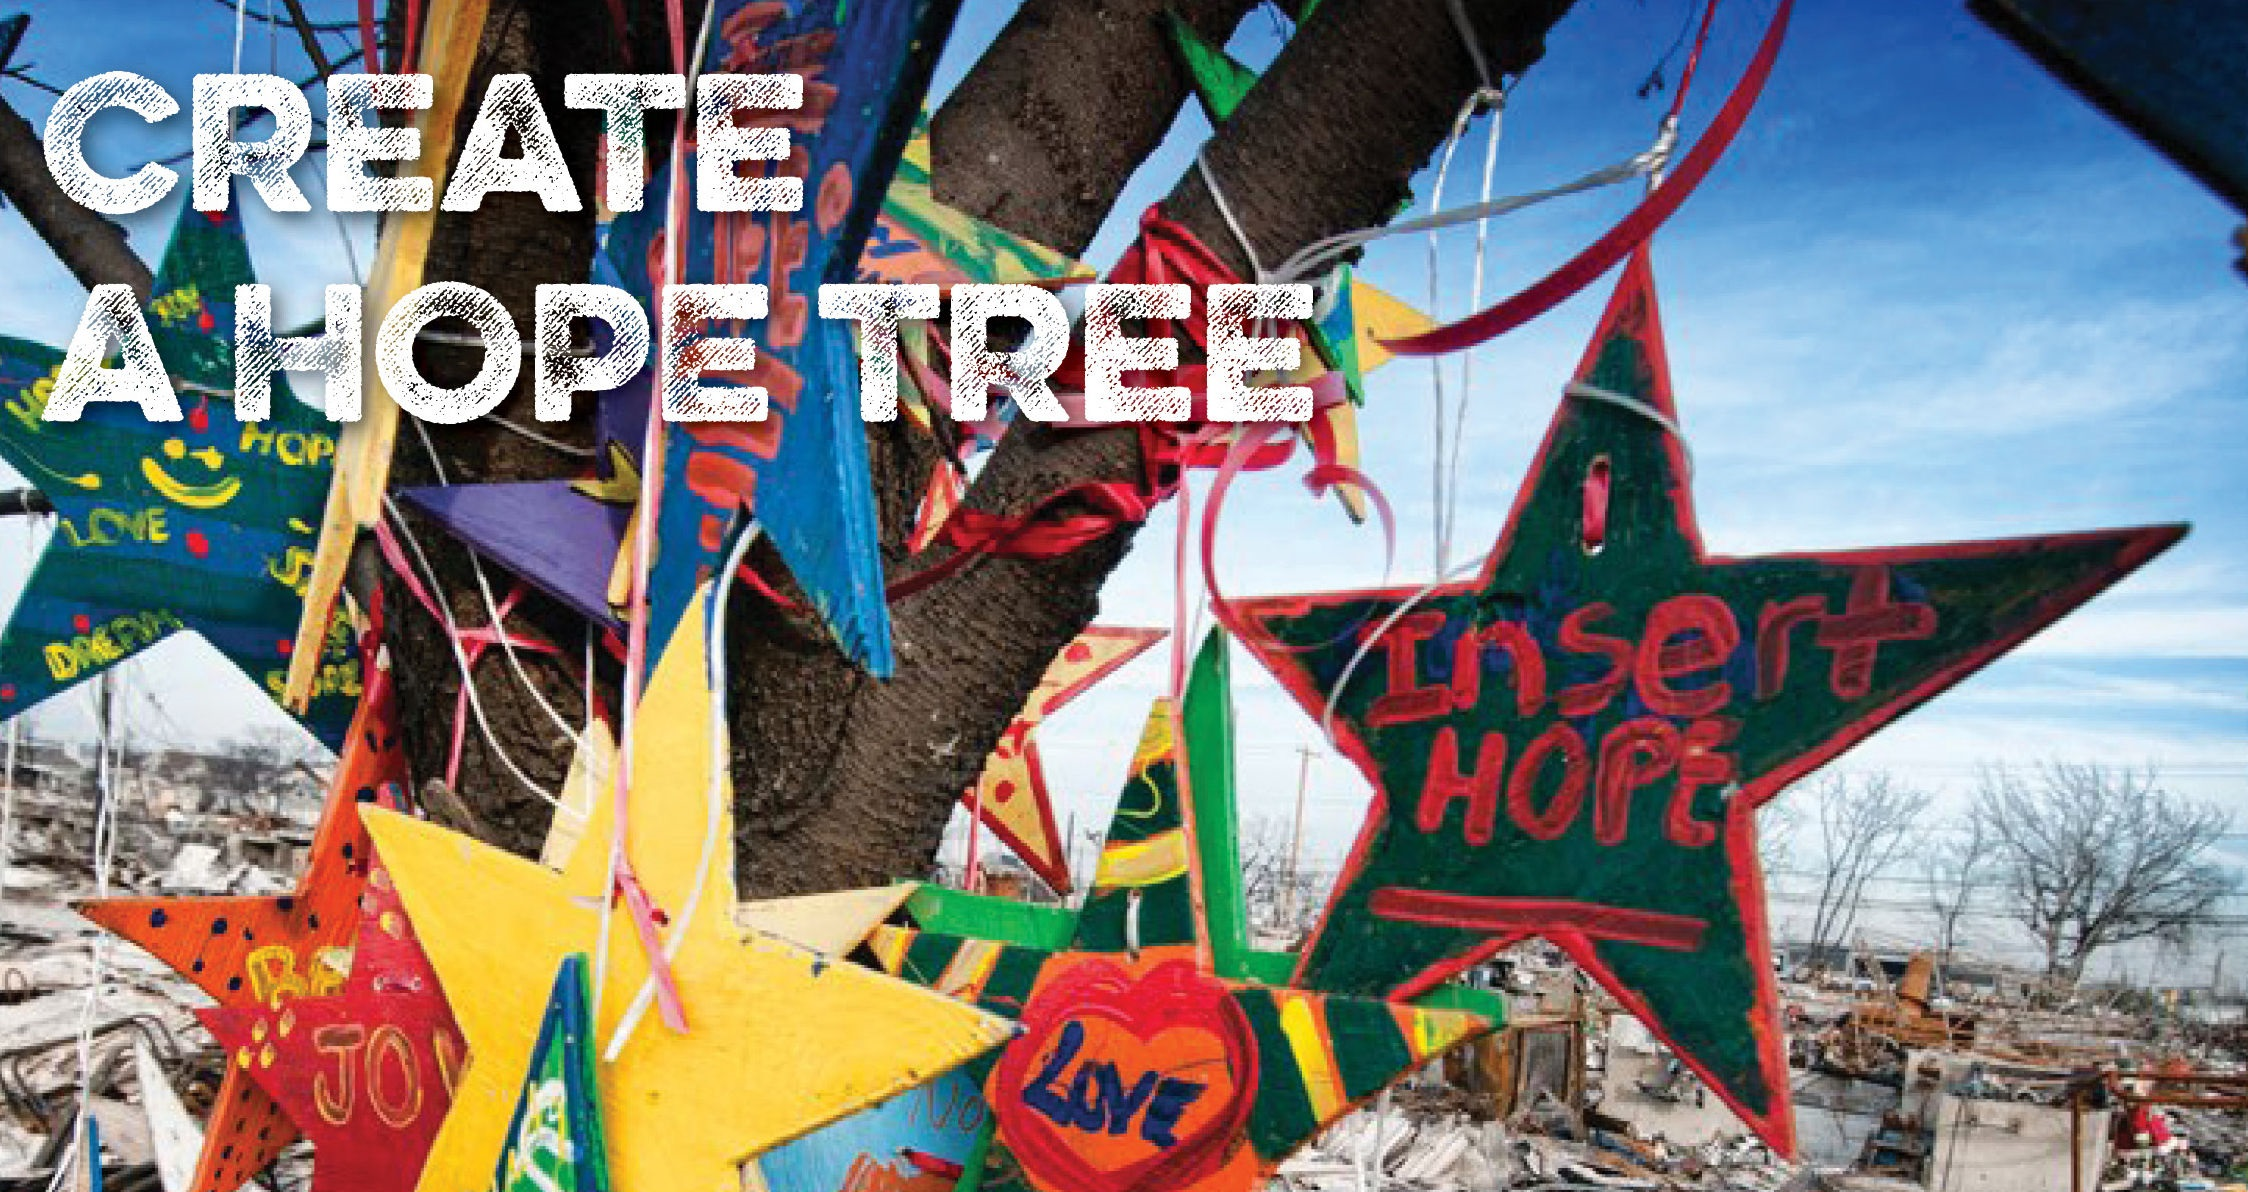 September 11, stars of hope, create hope, hope tree, 911 day